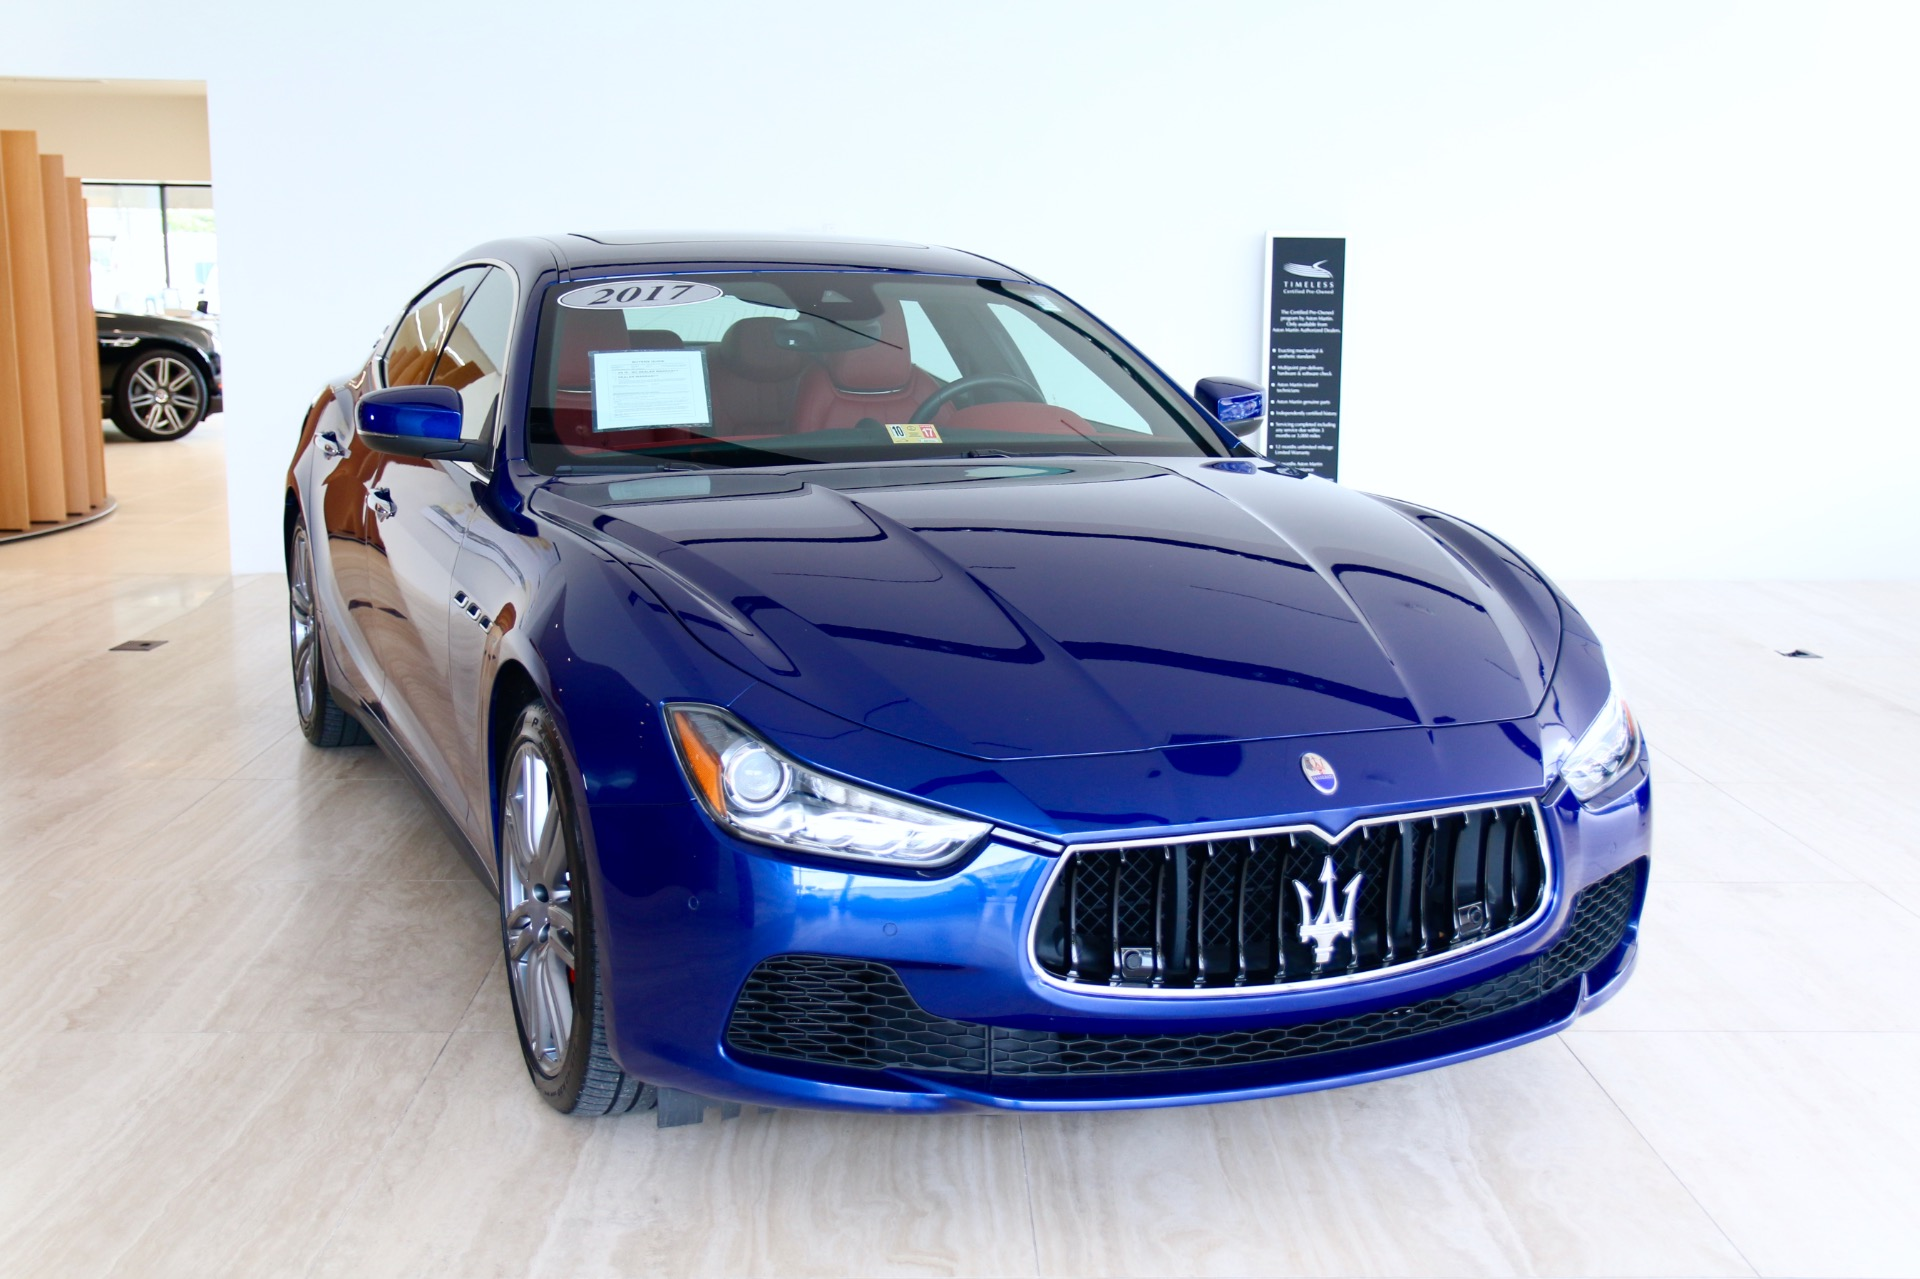 2017 maserati ghibli s q4 stock 7nc061201b for sale near. Black Bedroom Furniture Sets. Home Design Ideas